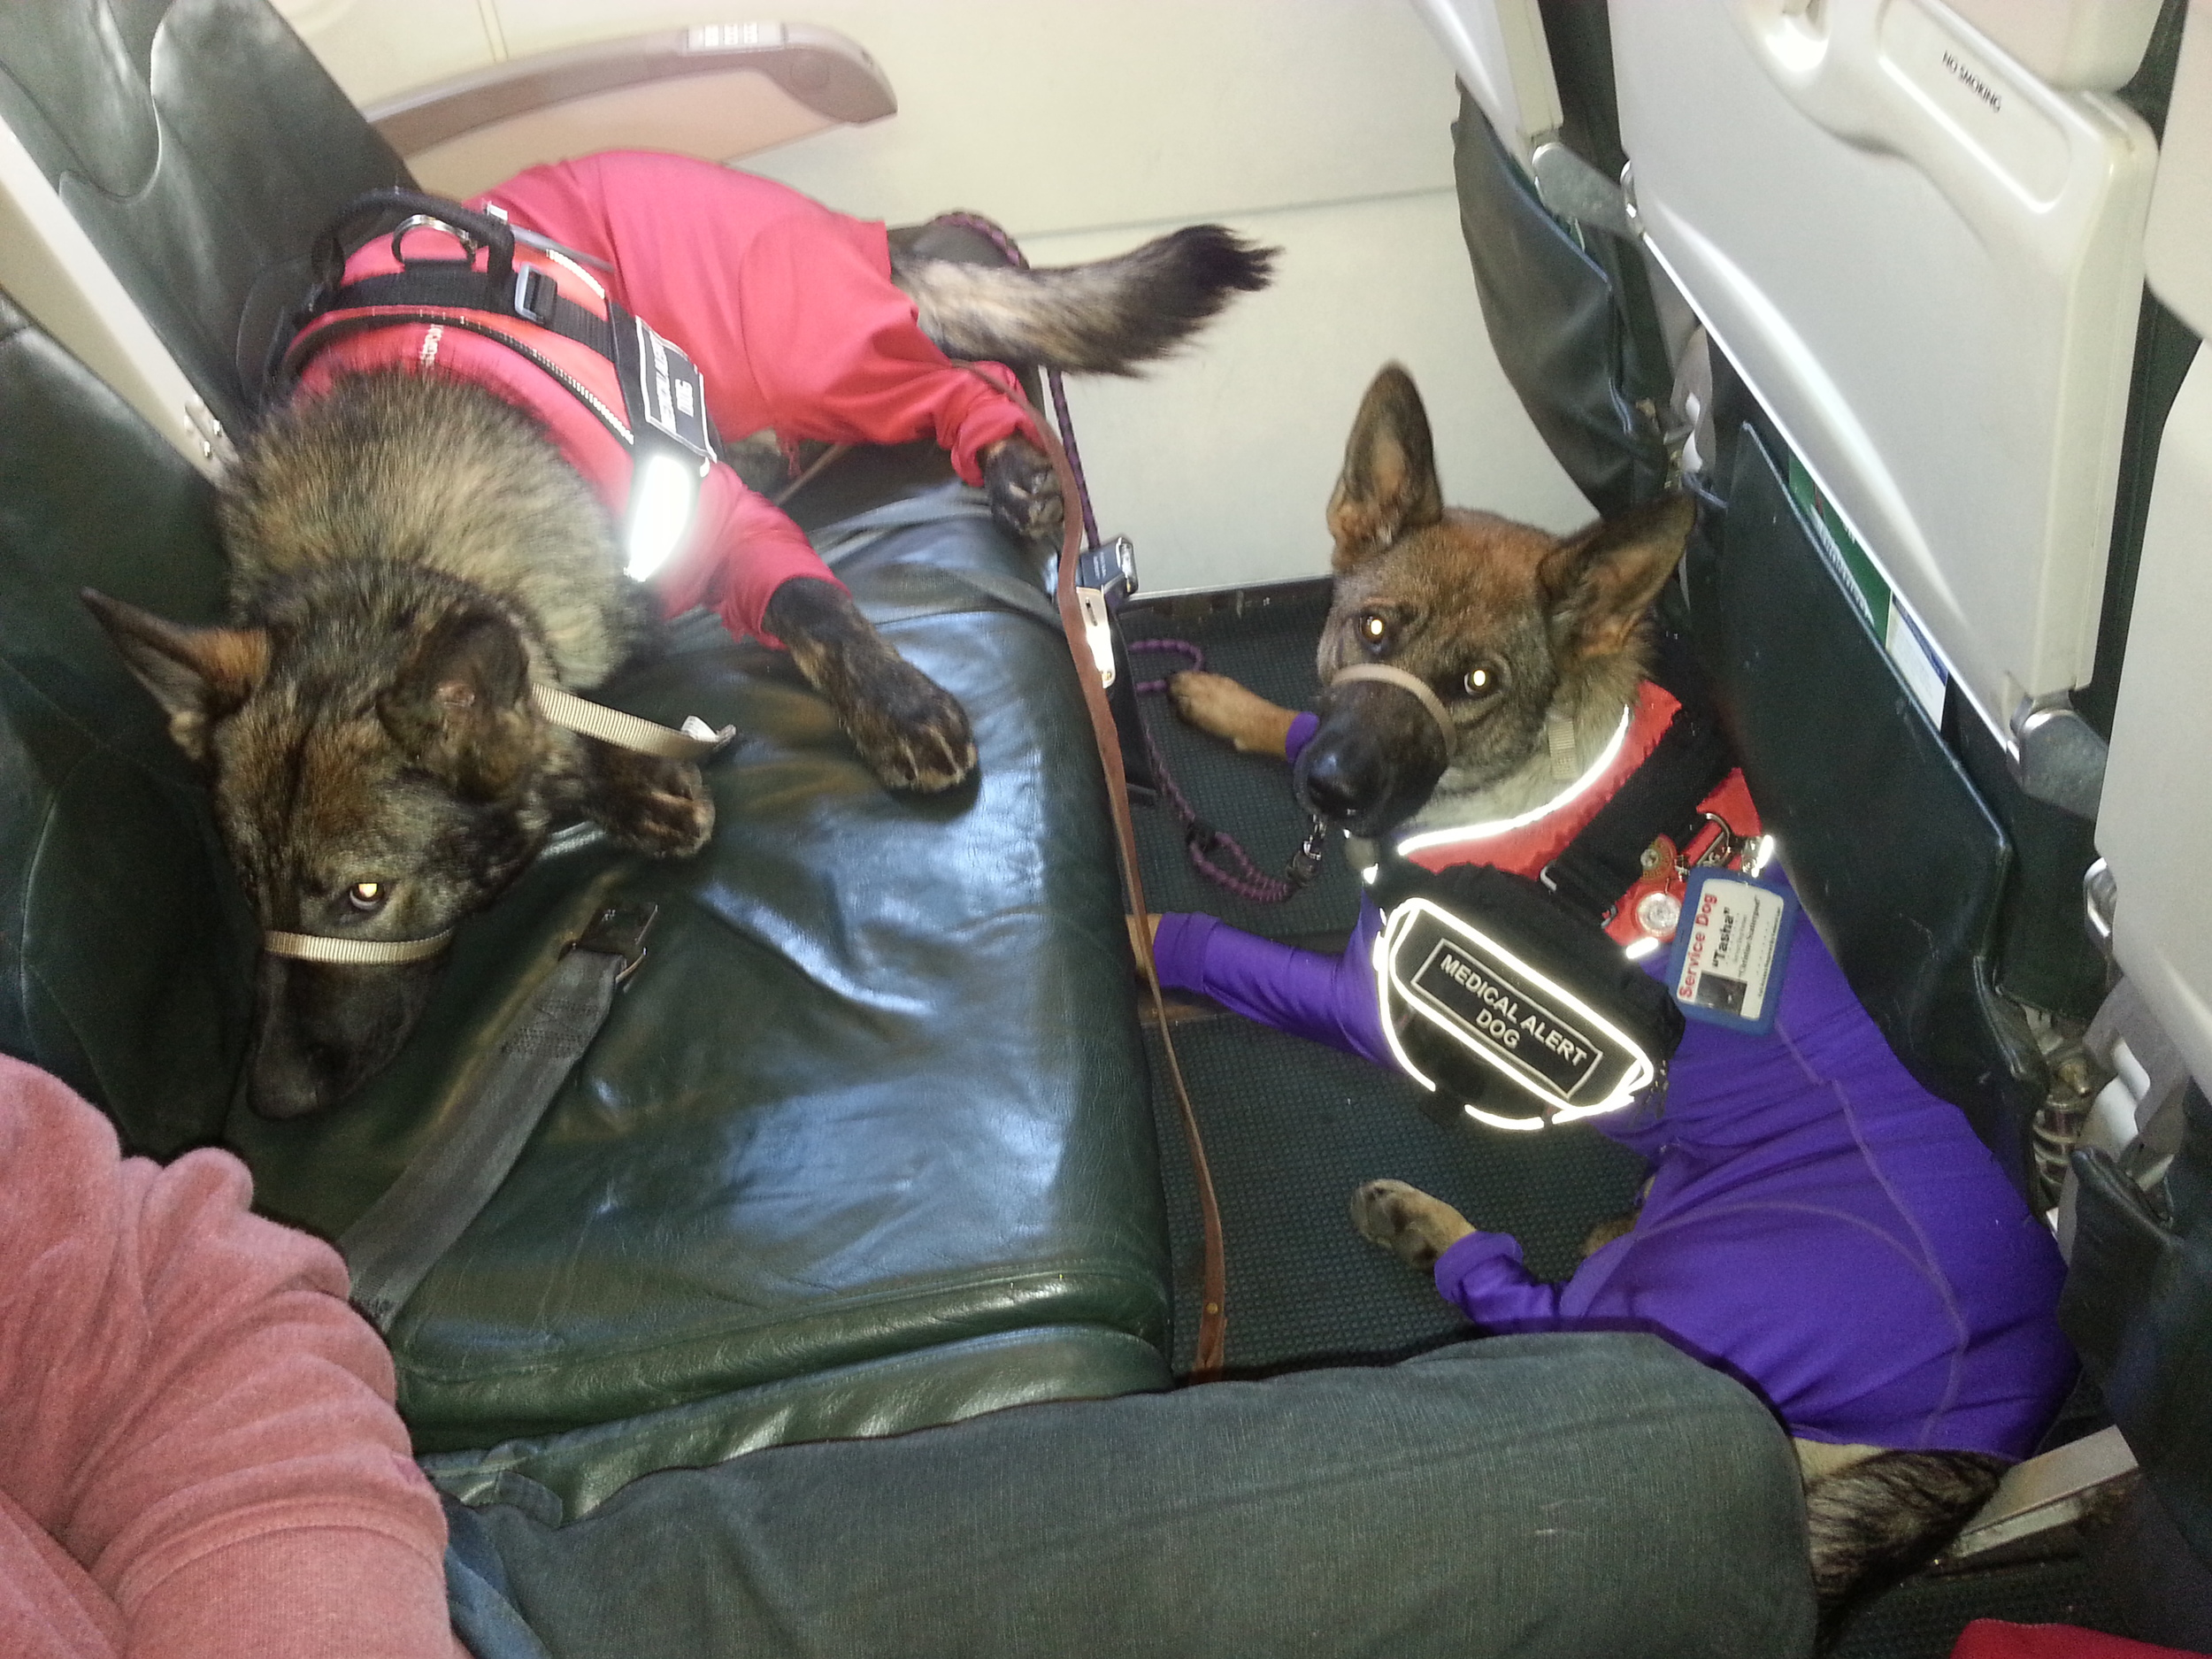 Oops, the dogs were suppose to be in different rows. The pups are patiently waiting while the new seats are found.